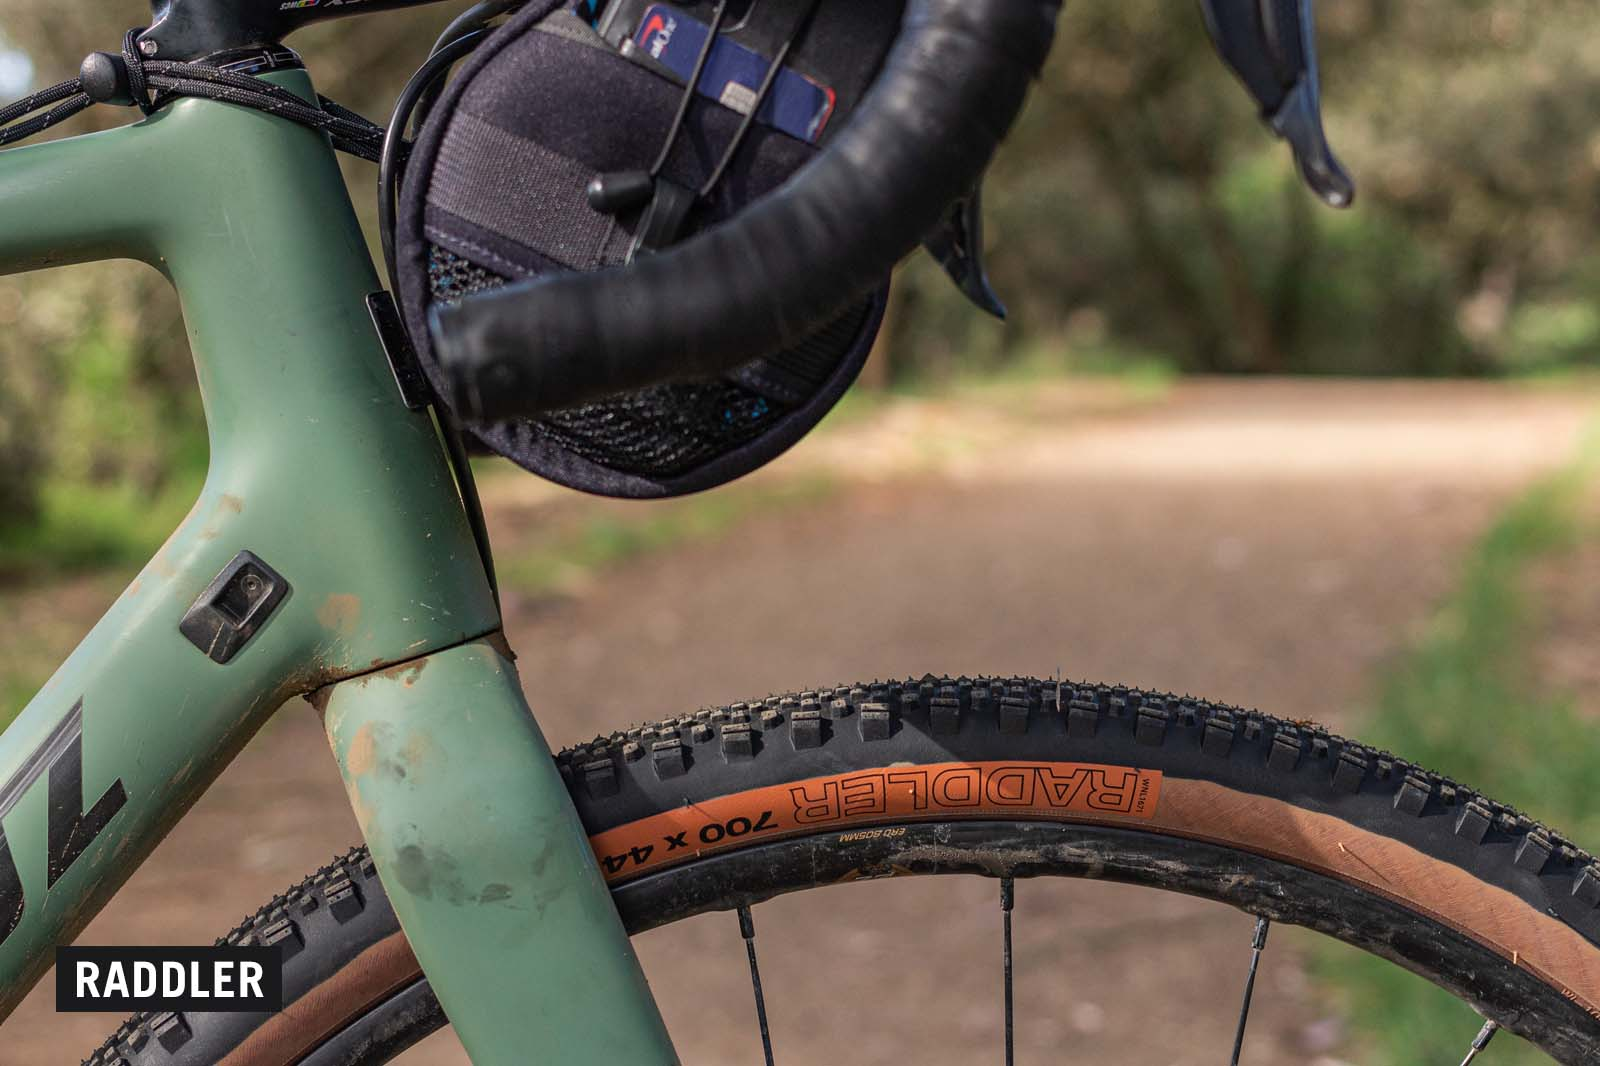 Ride Maple Hold Fast Cycling Tubeless Tape Same Manufacturer as The Leading Brand